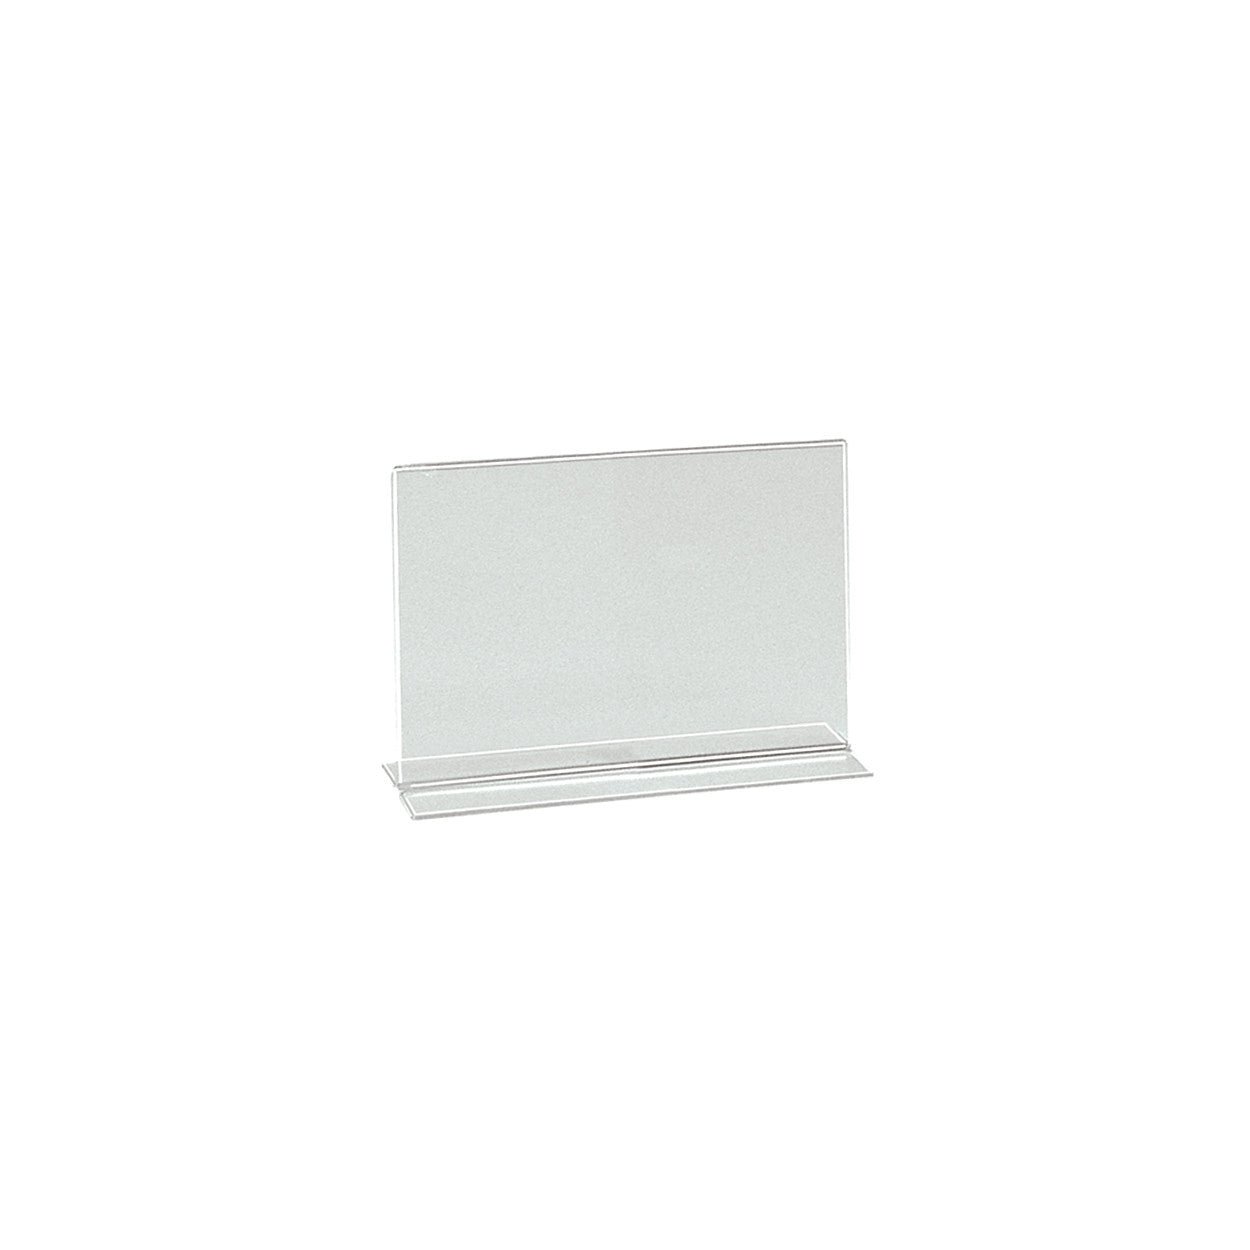 Double sided acrylic sign holder  A6 Landscape with 60 mm D Base T2736CA